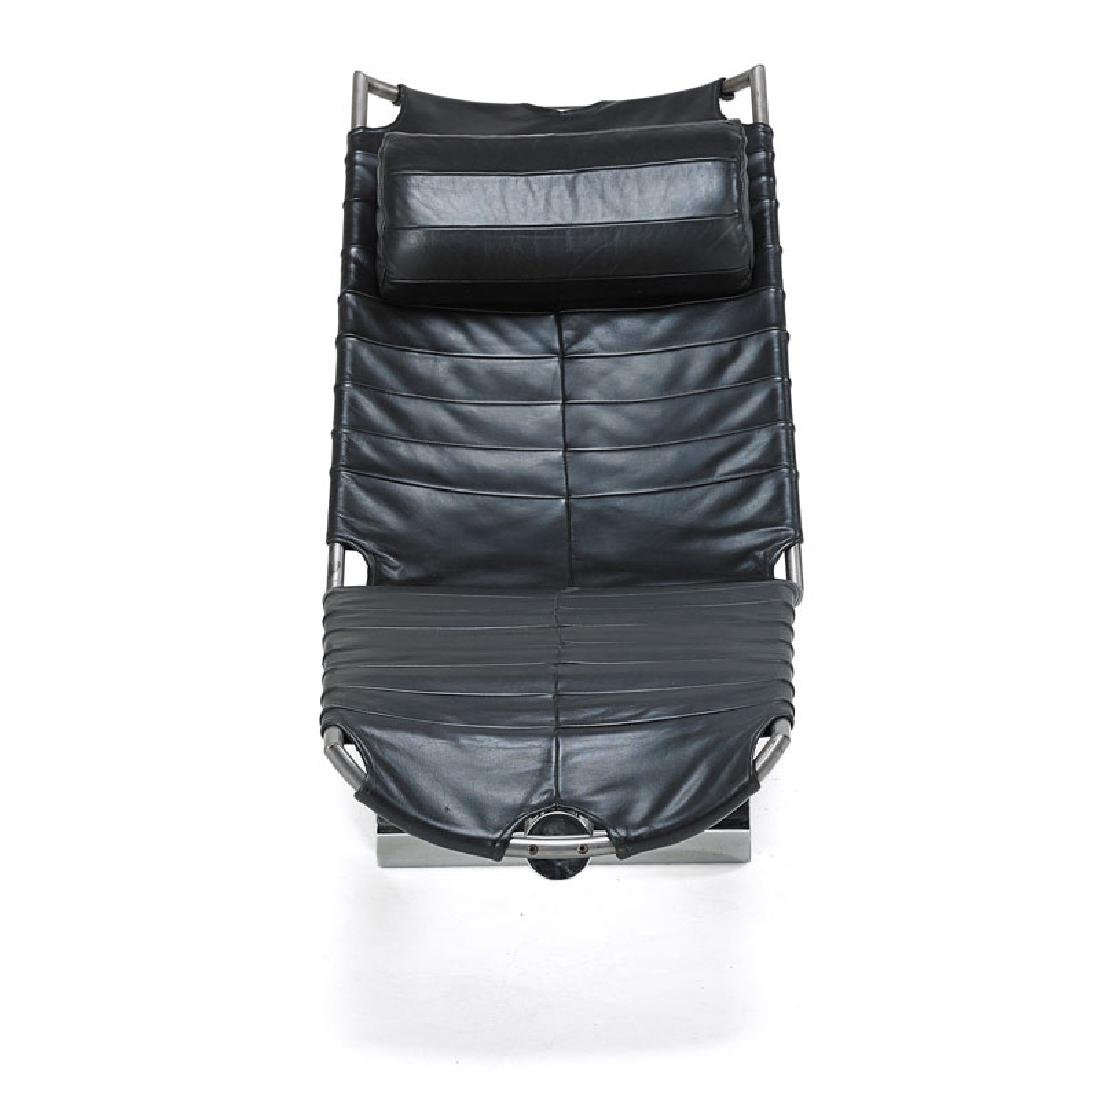 PAUL TUTTLE Chariot lounge chair - 4